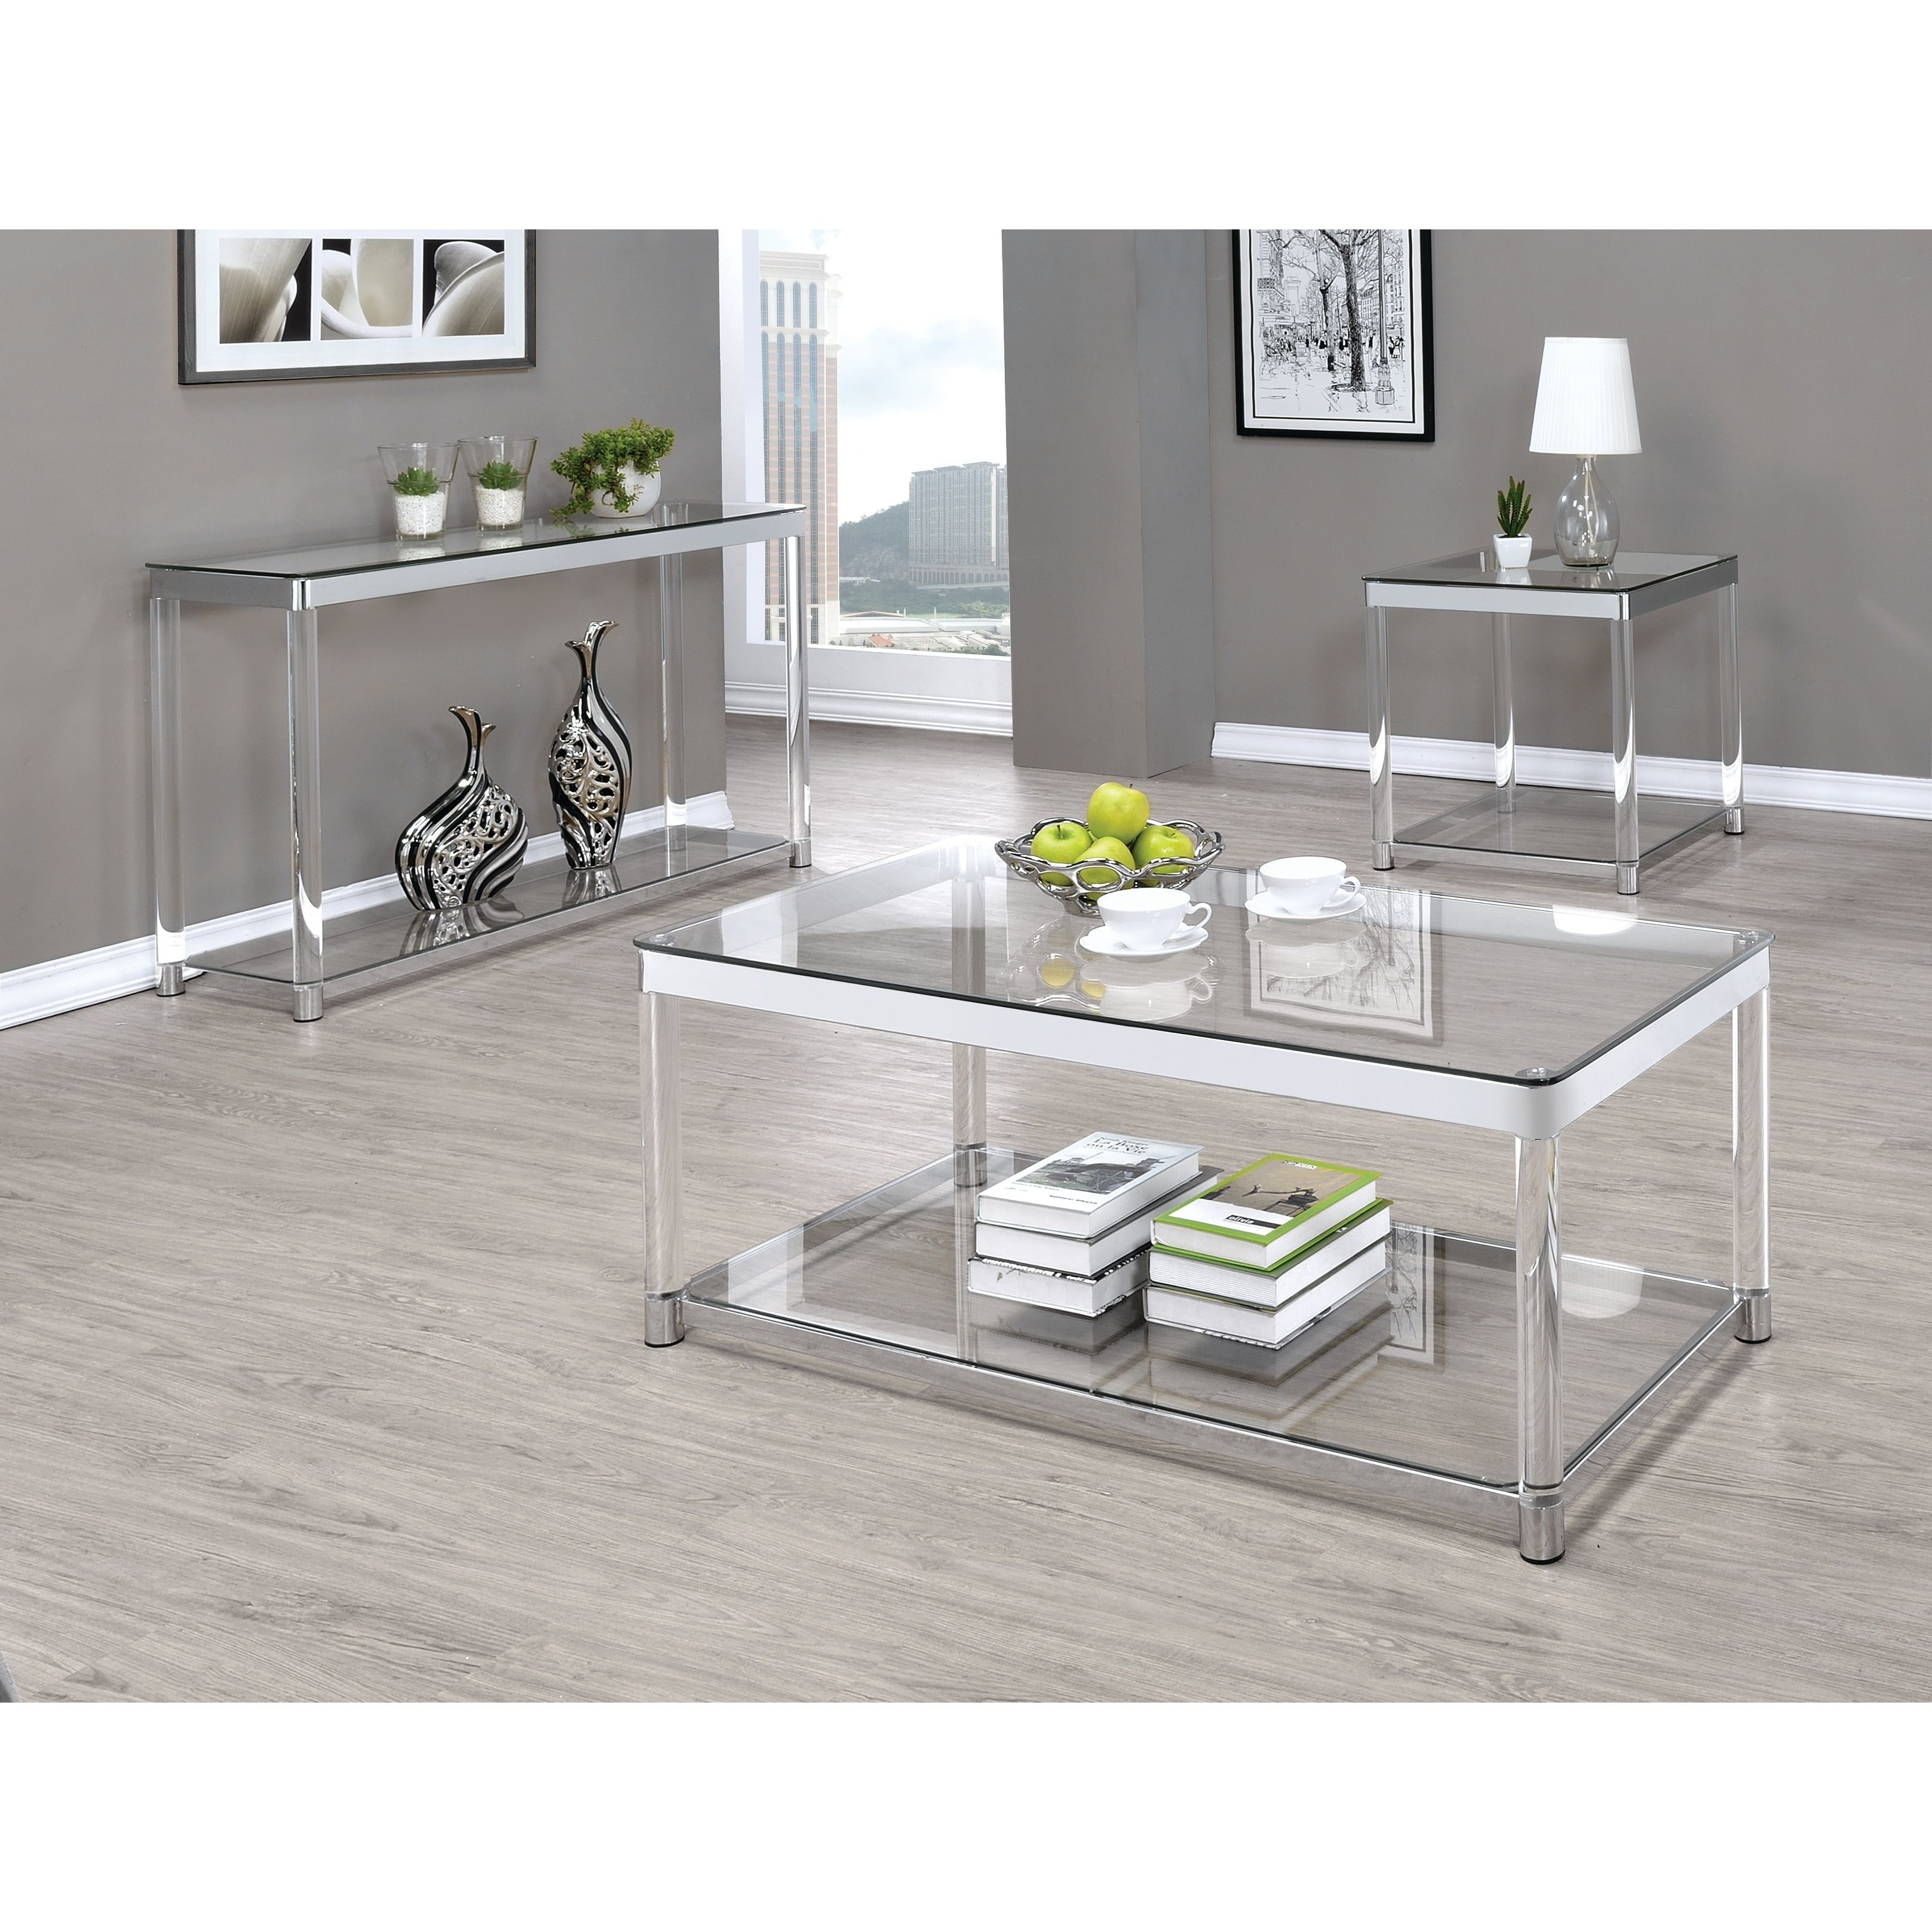 Contemporary Chrome Glass Top And Acrylic Legs Coffee Table 48